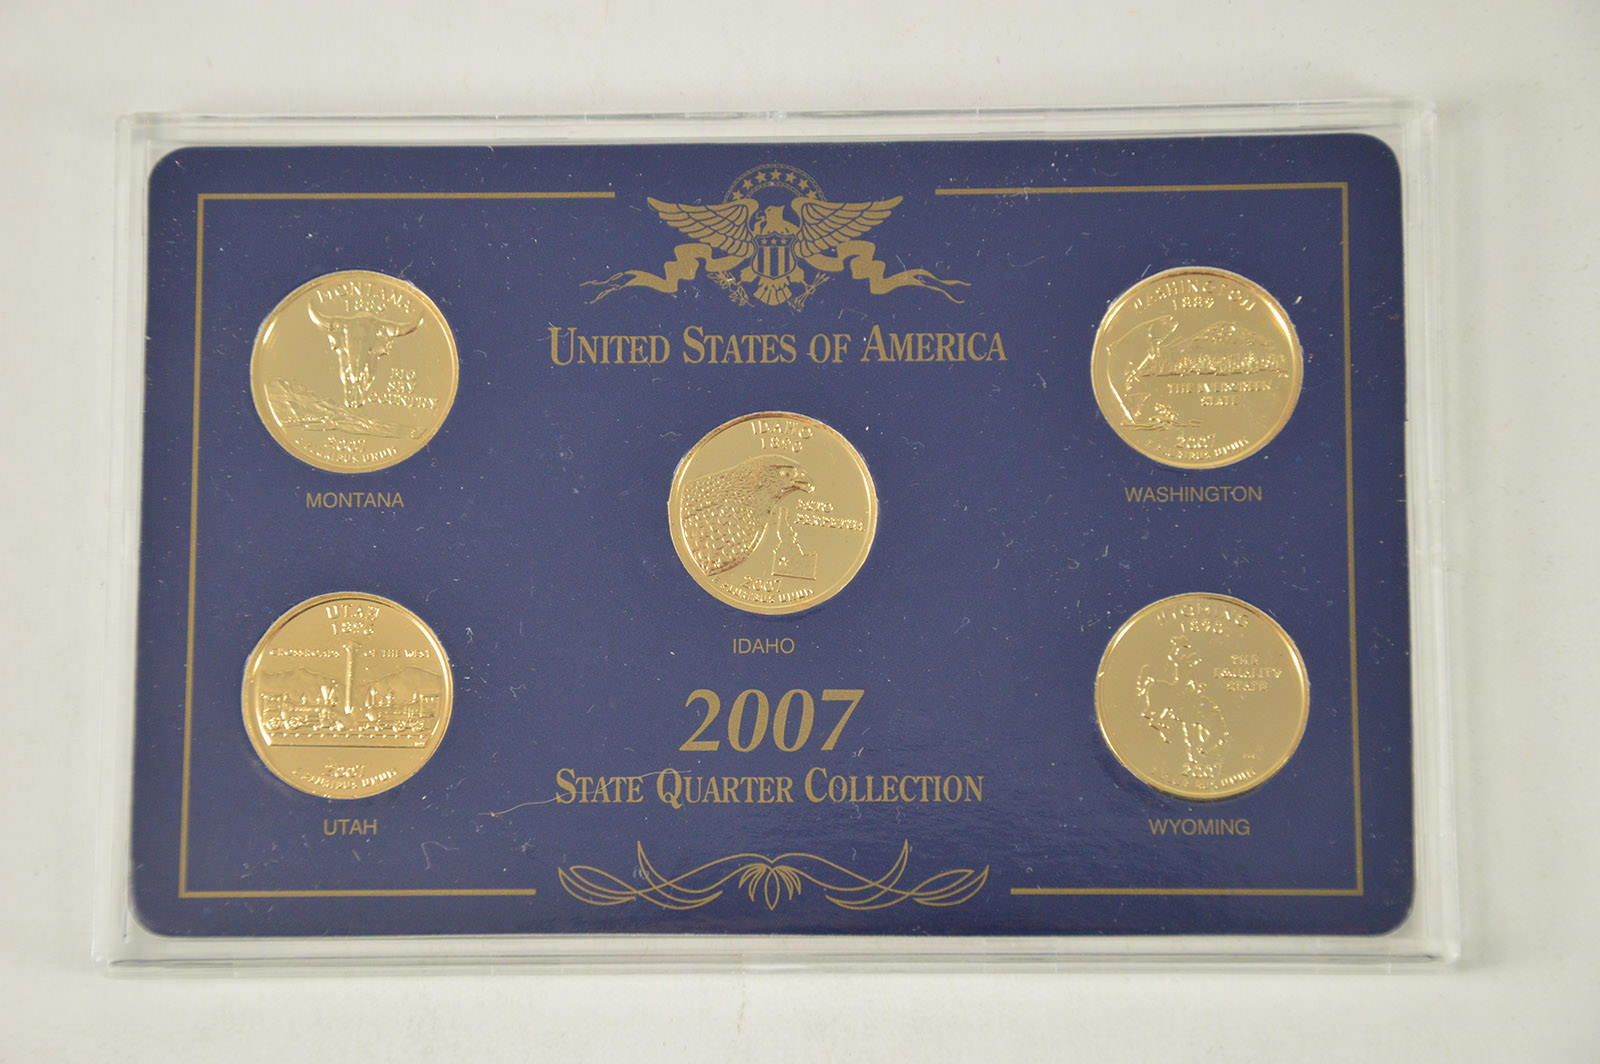 594. 1999 gold edition state quarter collection in original box.